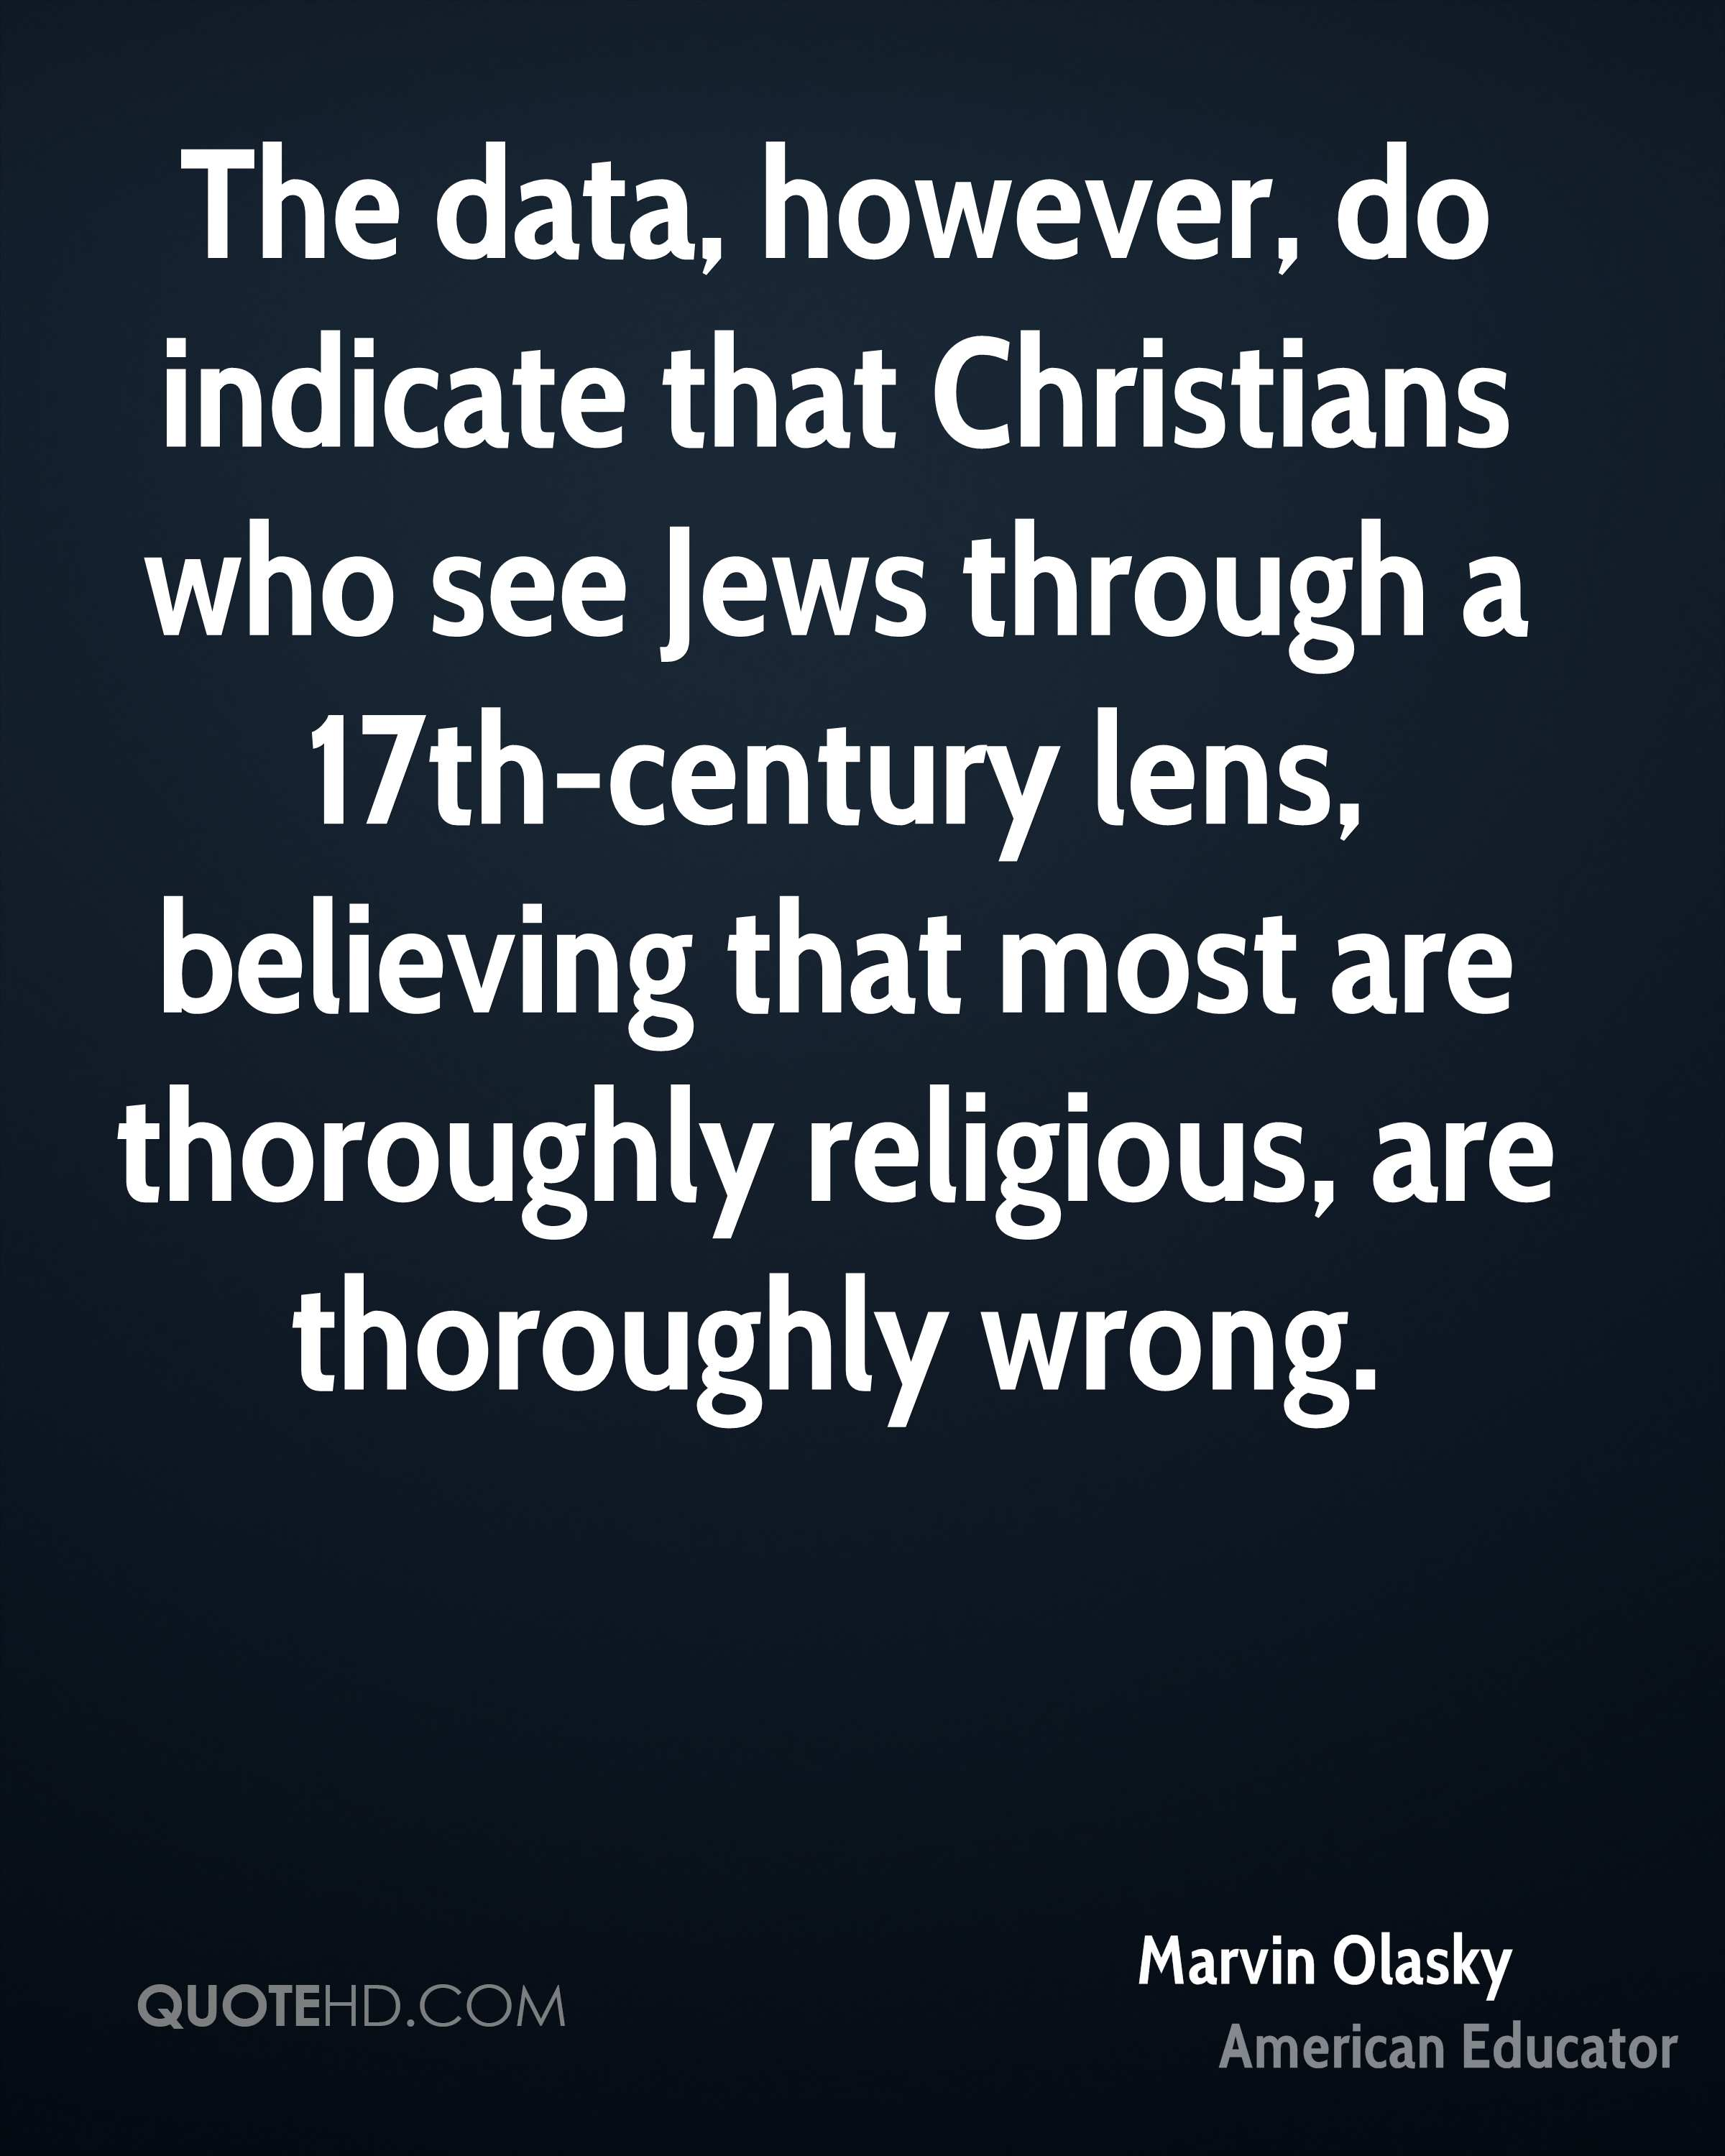 The data, however, do indicate that Christians who see Jews through a 17th-century lens, believing that most are thoroughly religious, are thoroughly wrong.